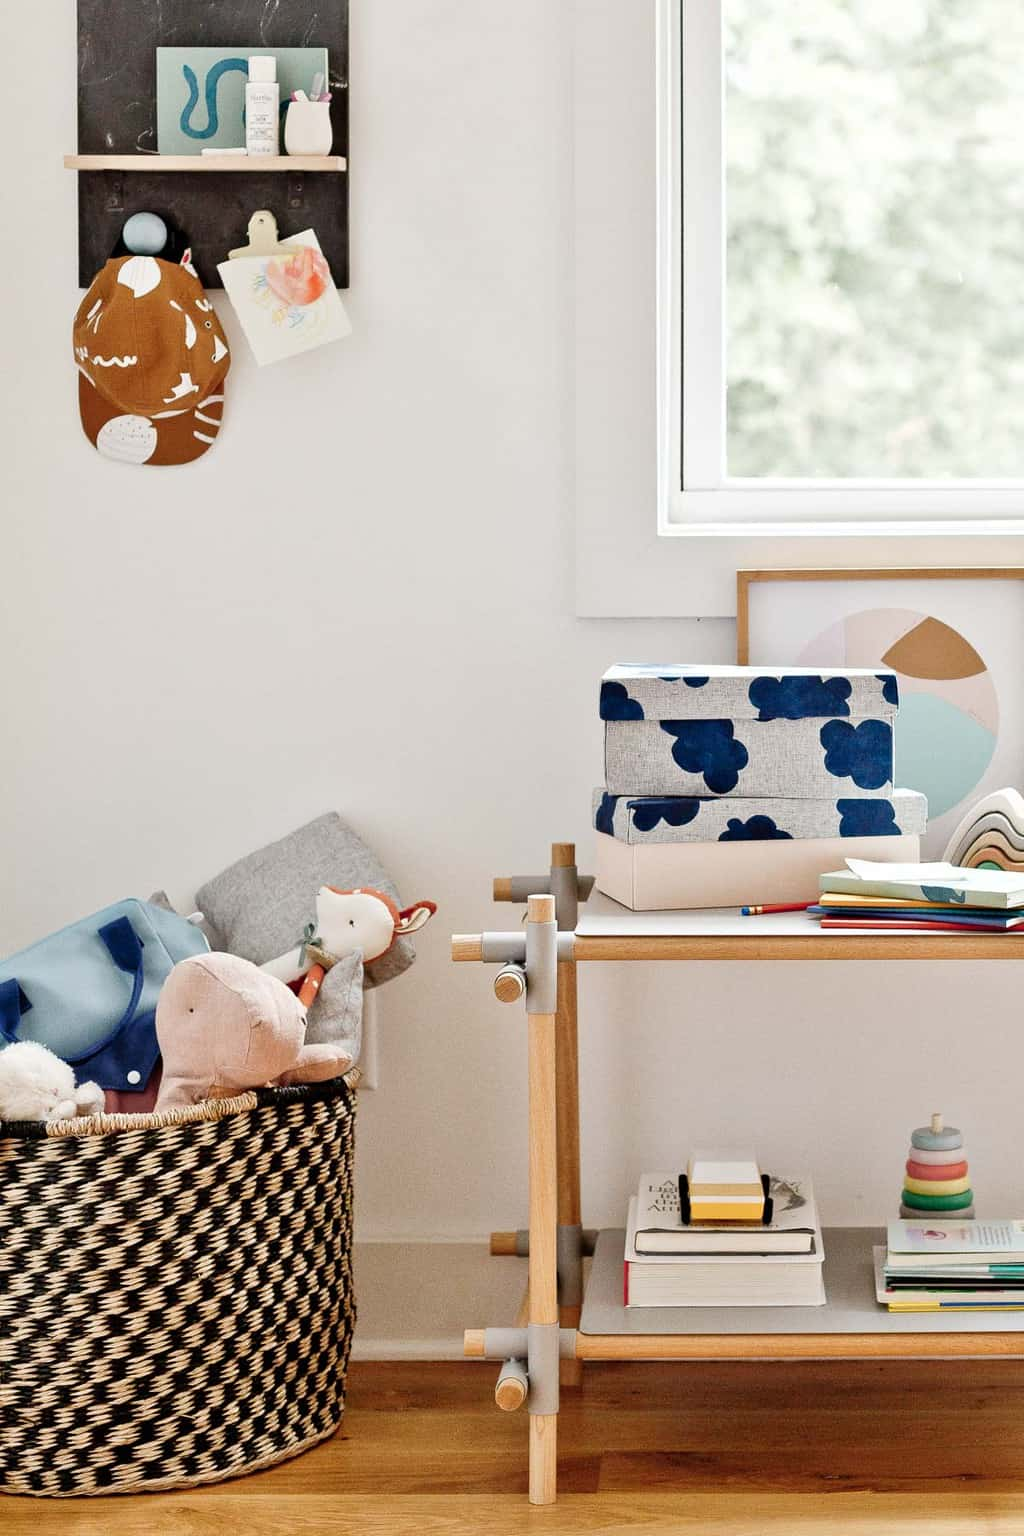 Kid's room with fabric covered storage boxes and large baskets for toys